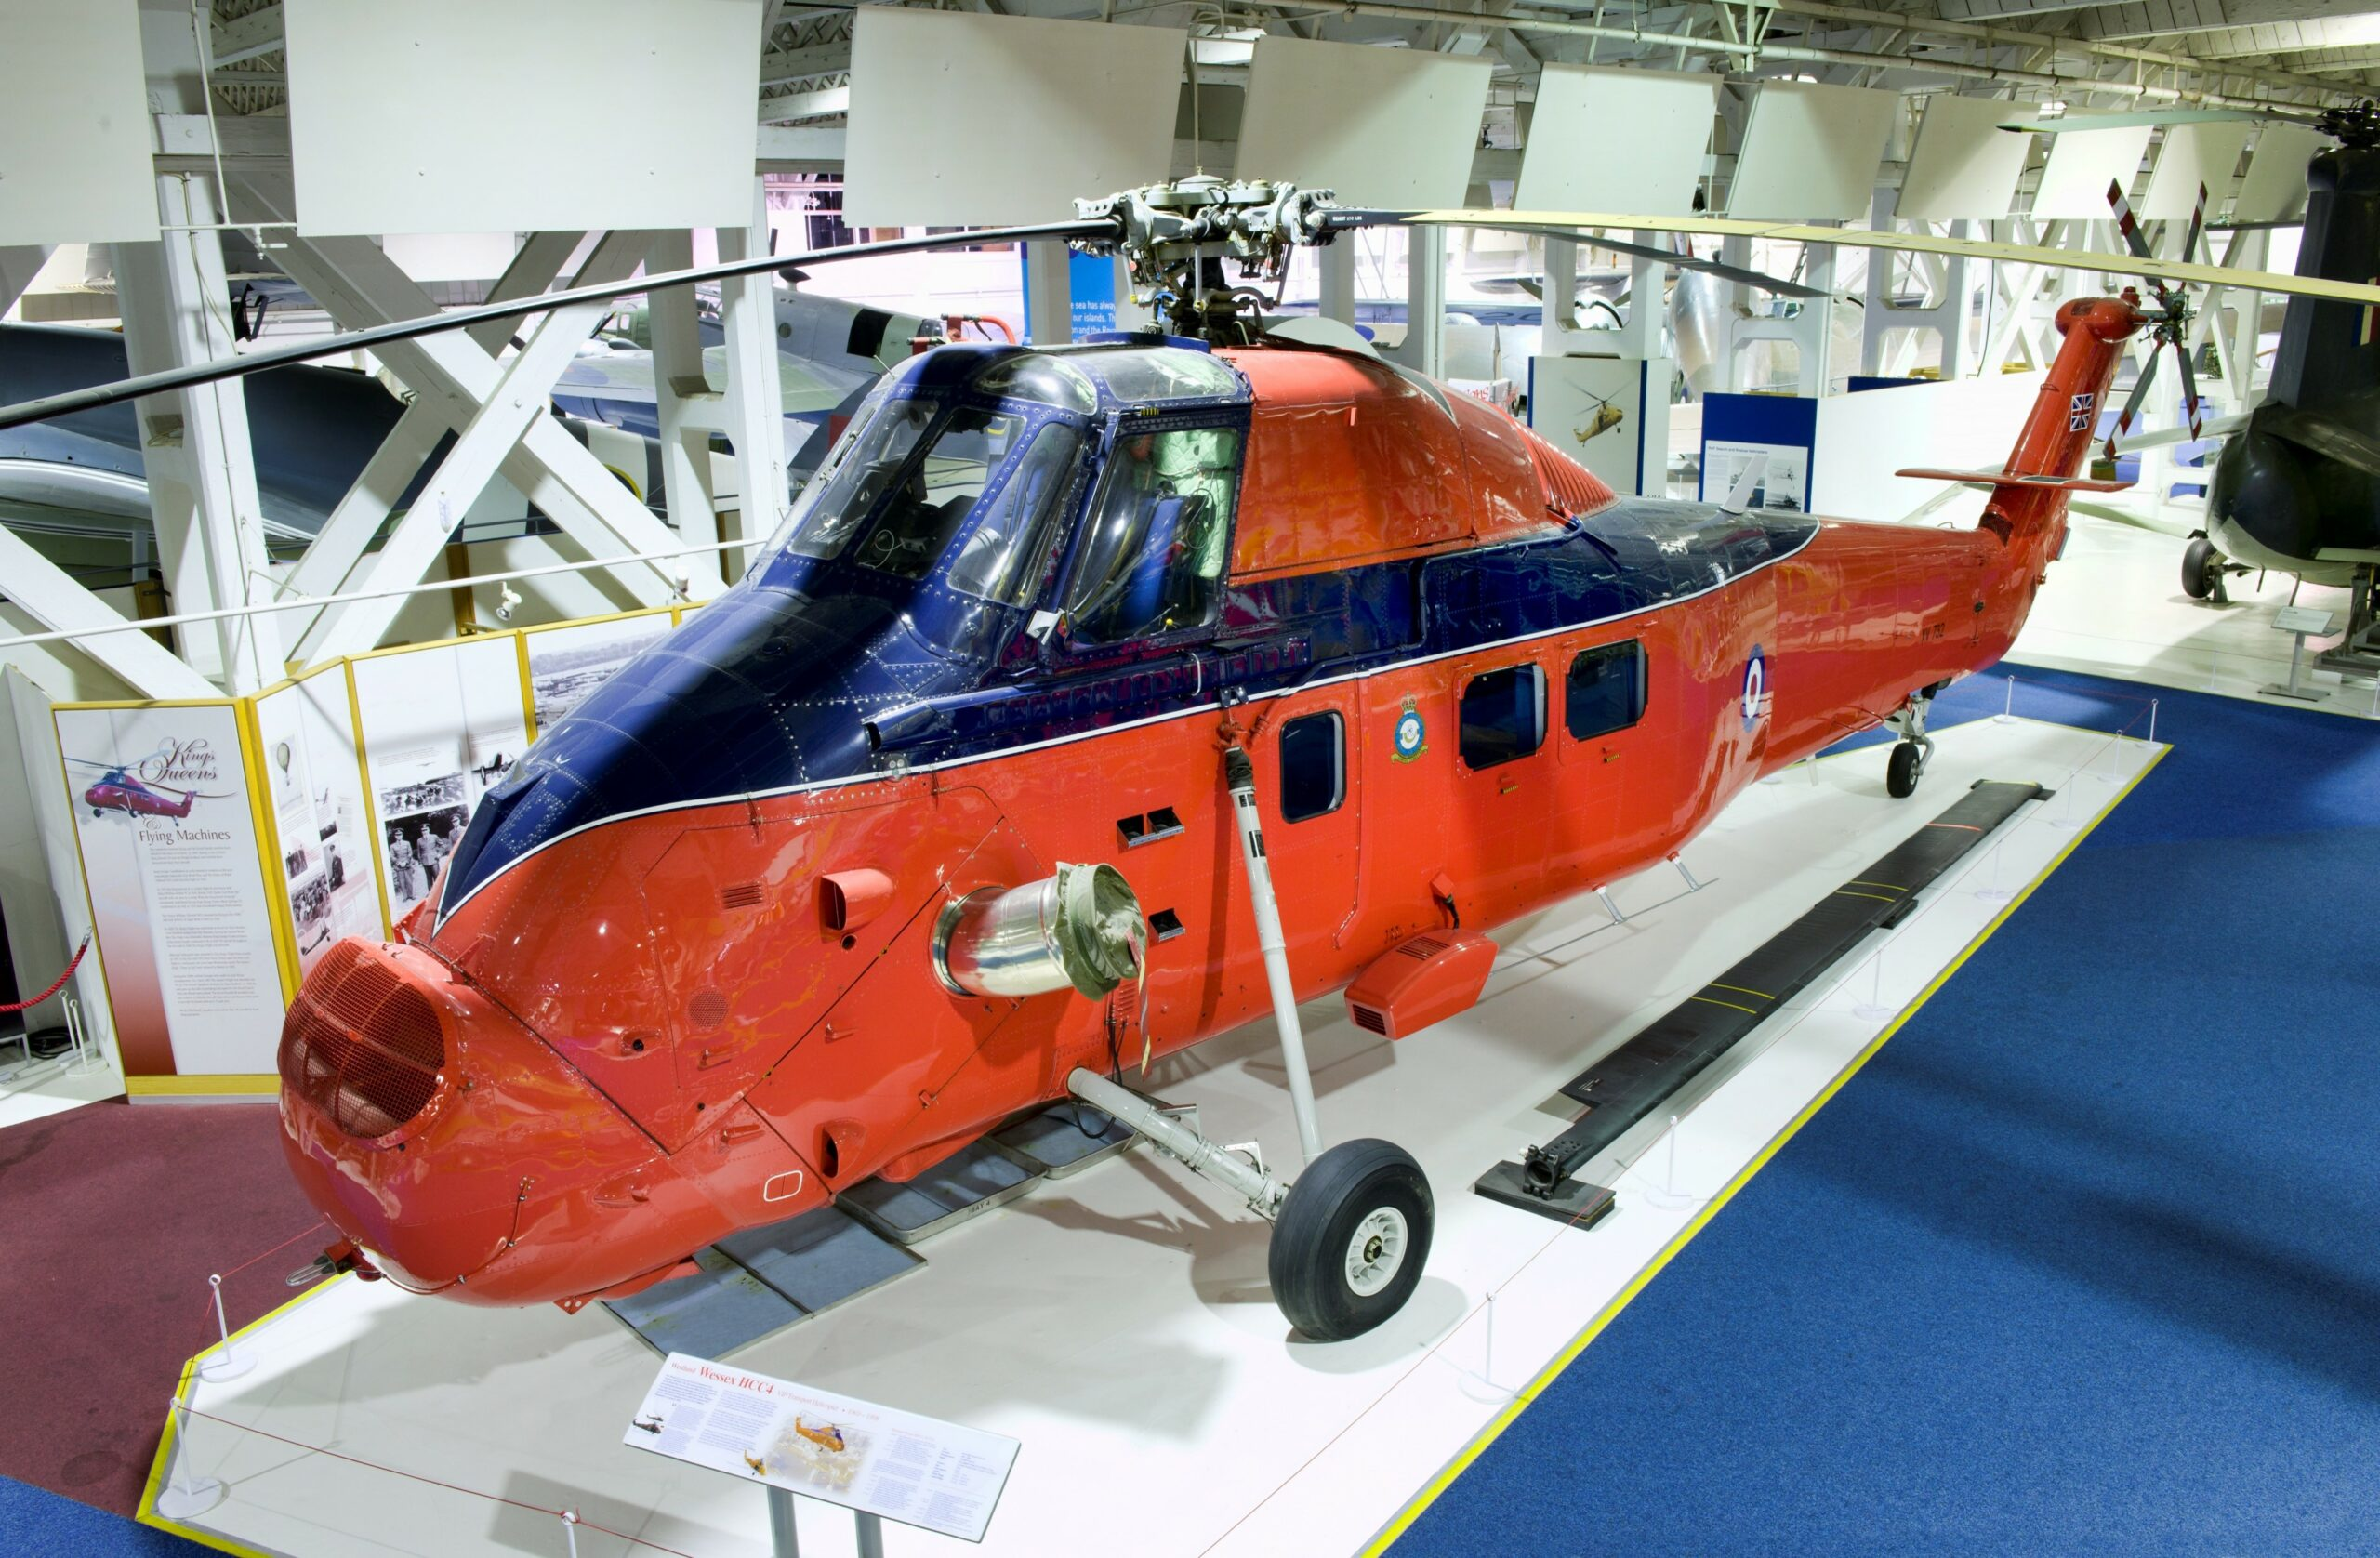 Wessex helicopter in red and blue